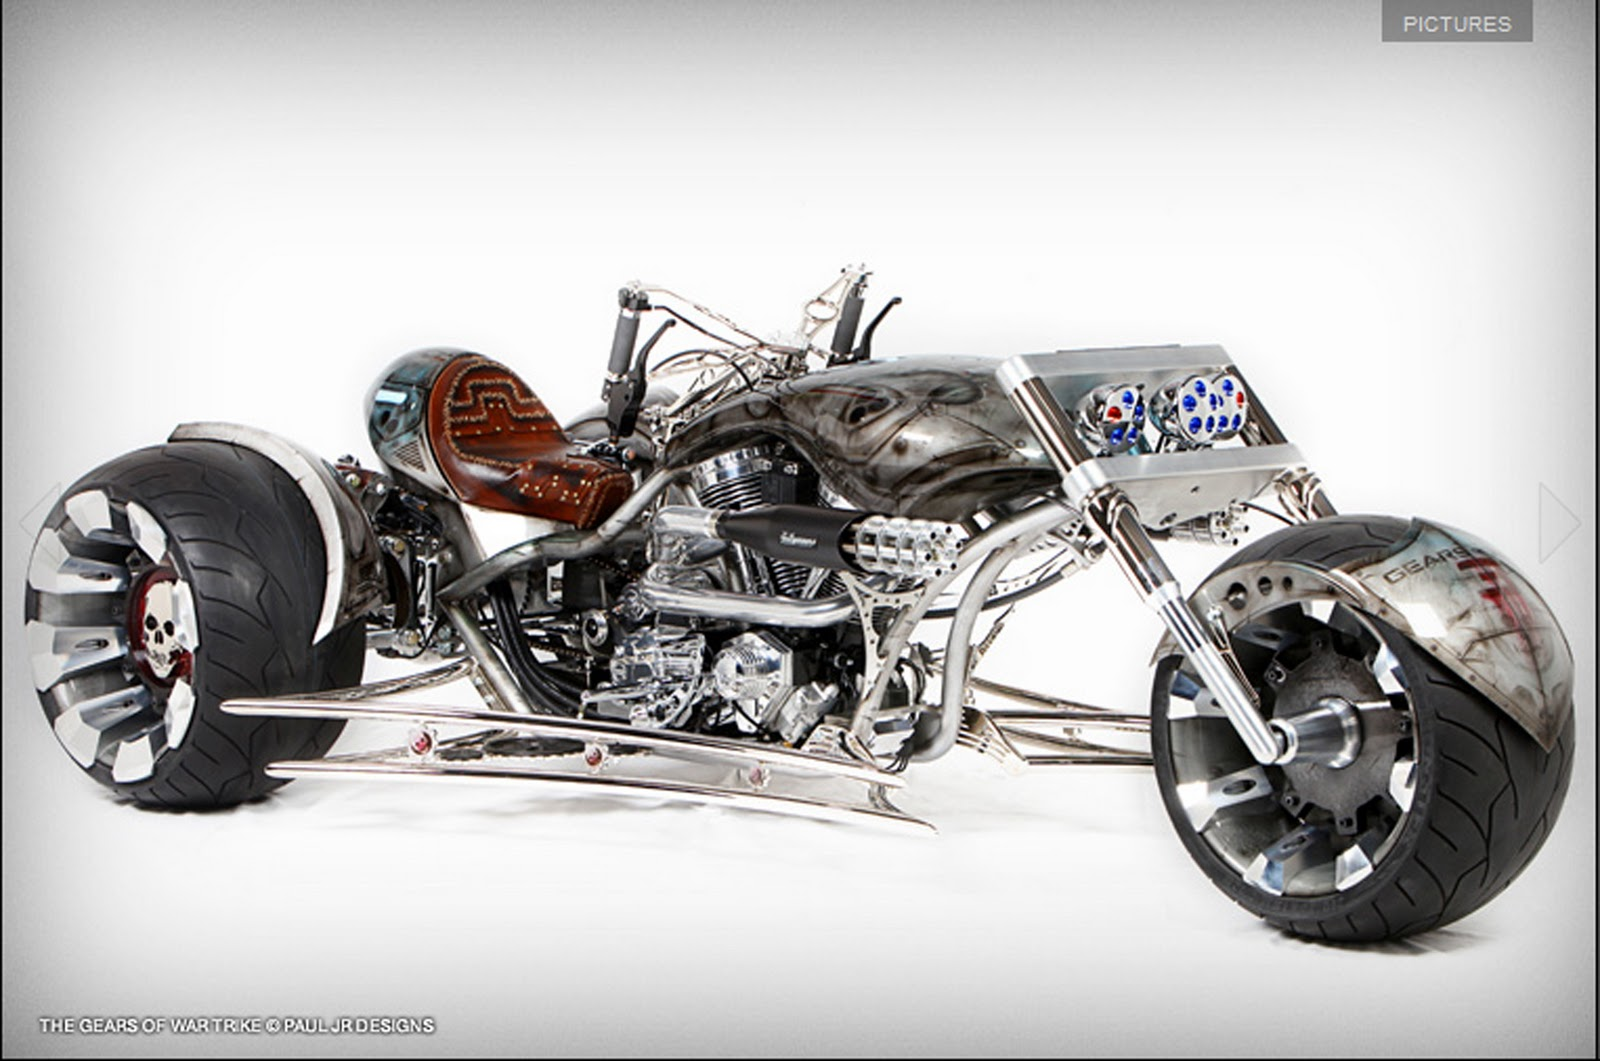 http://3.bp.blogspot.com/-evn91fbcev8/TuhwbxD8R8I/AAAAAAAACo8/h7JYjLbsd7U/s1600/Gears+of+war+trike+bike+concept+hoverbike+motorcycle+teutul+paul+jr+junior+designs+3.jpg